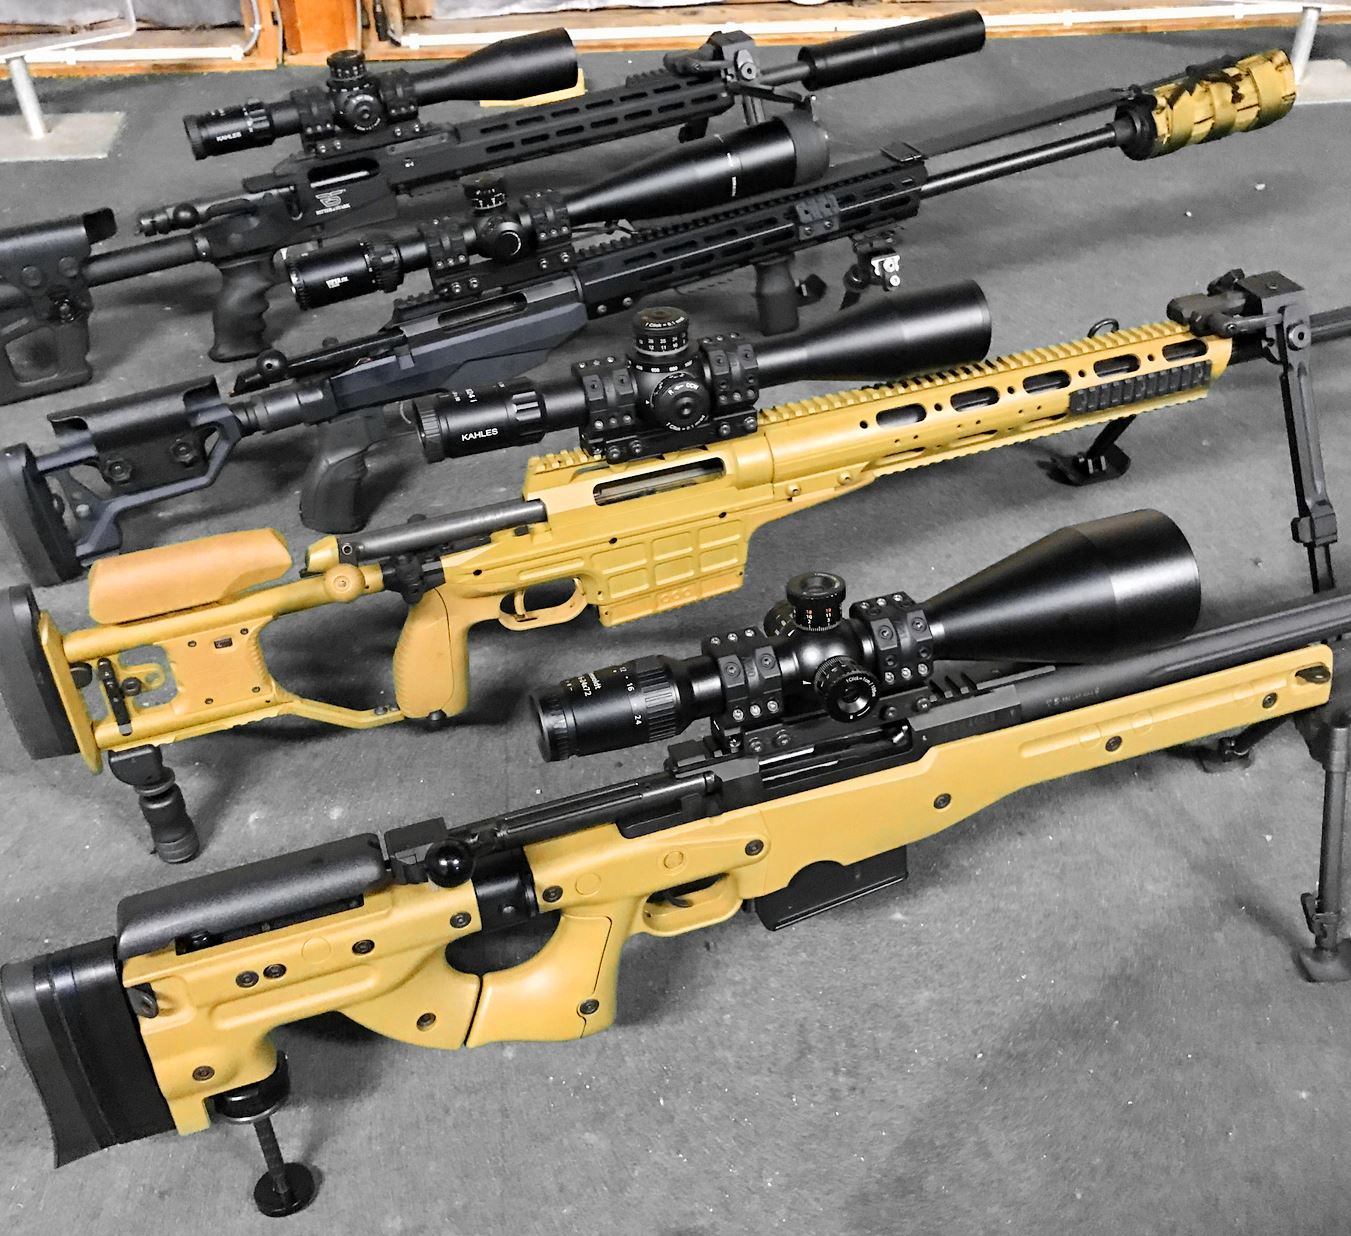 Tikka T3x TAC A1 for left handers, and more T3x news - The Firearm BlogThe Firearm Blog